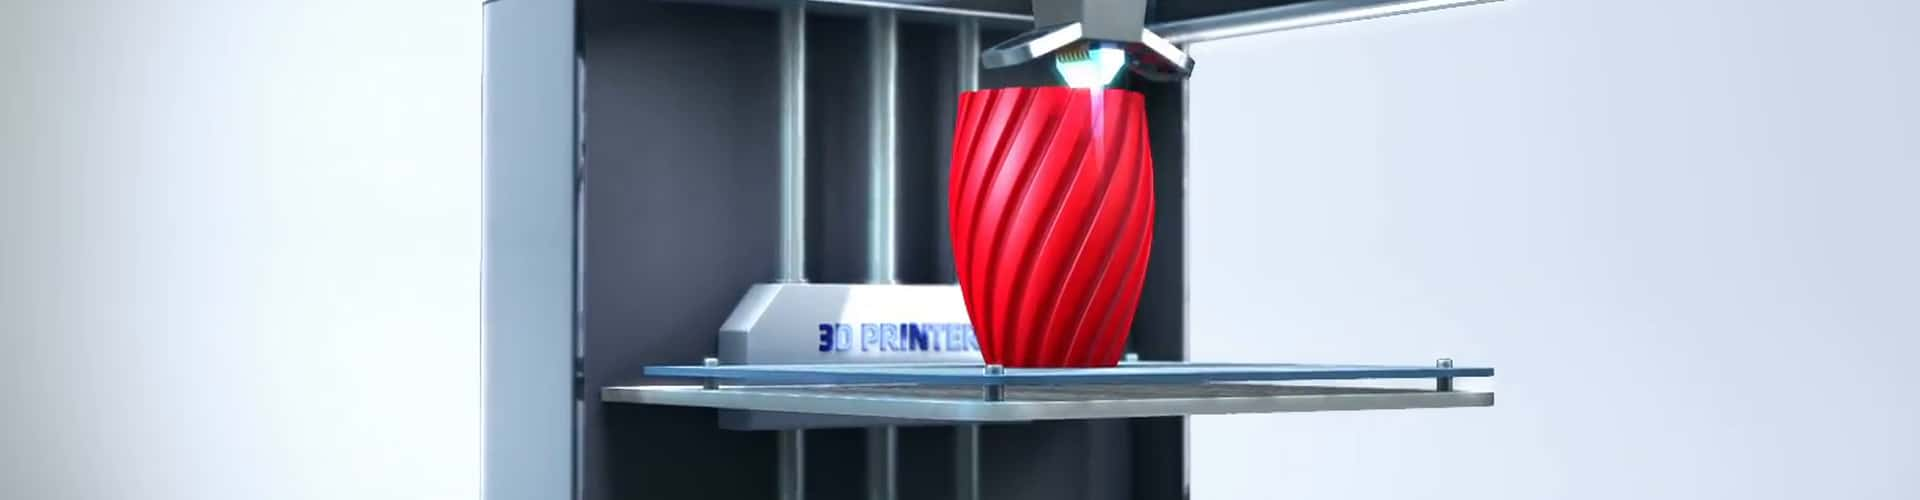 Type A Machines Series 1 3D Printer Review